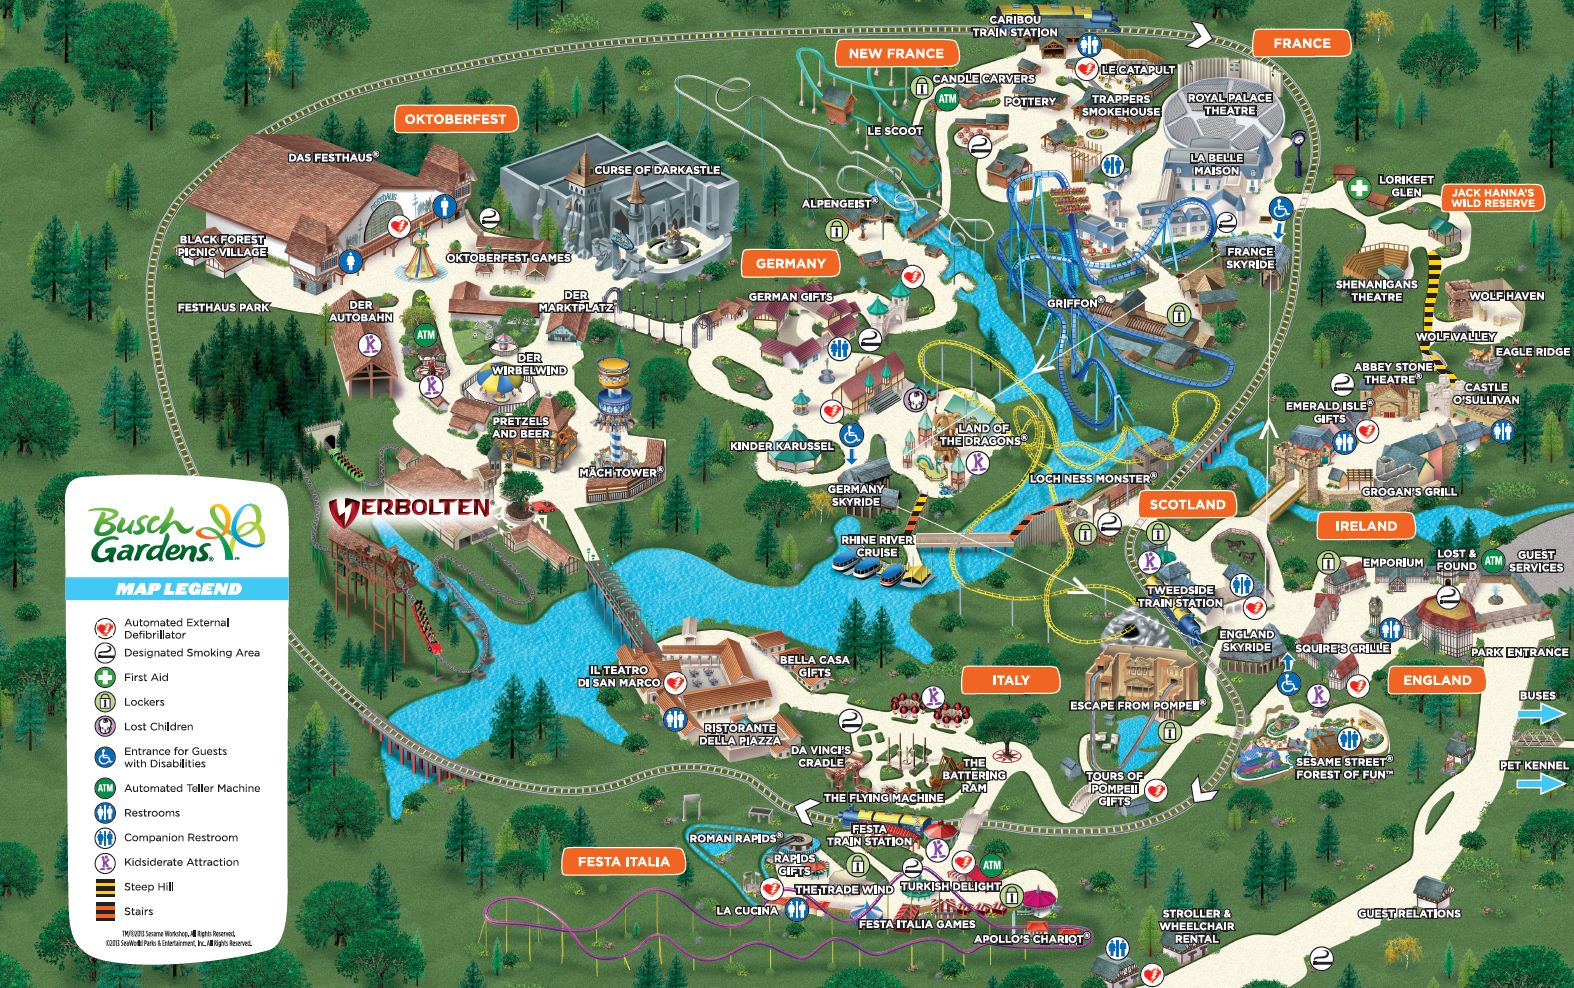 Park Map Busch Gardens Williamsburg Vintage Pinterest Gardens Virginia And Amusement Parks